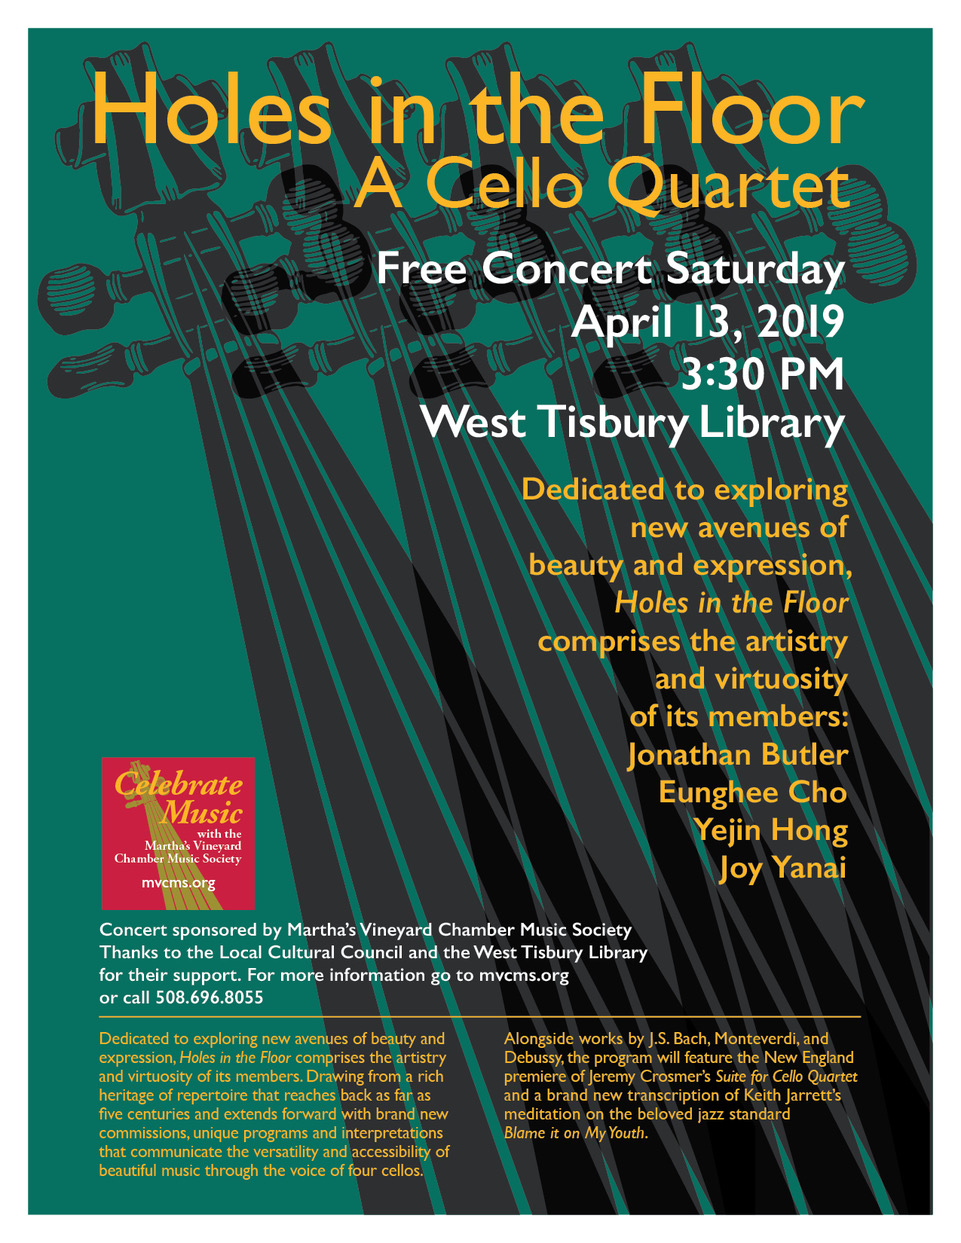 Holes in the Floor: A Cello Quartet | West Tisbury Library